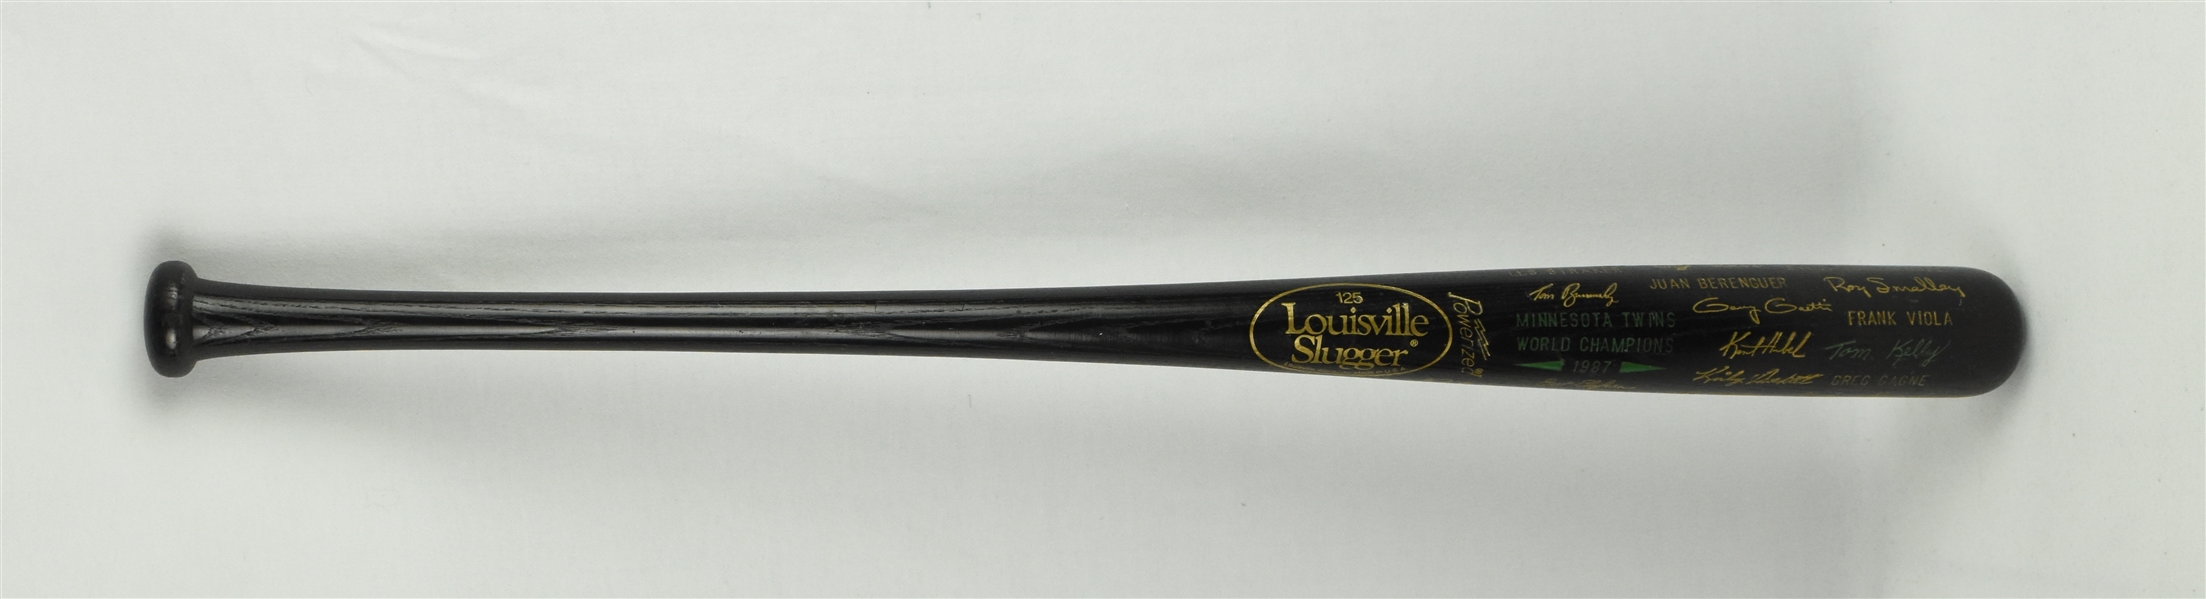 Minnesota Twins 1987 World Series Championship Bat